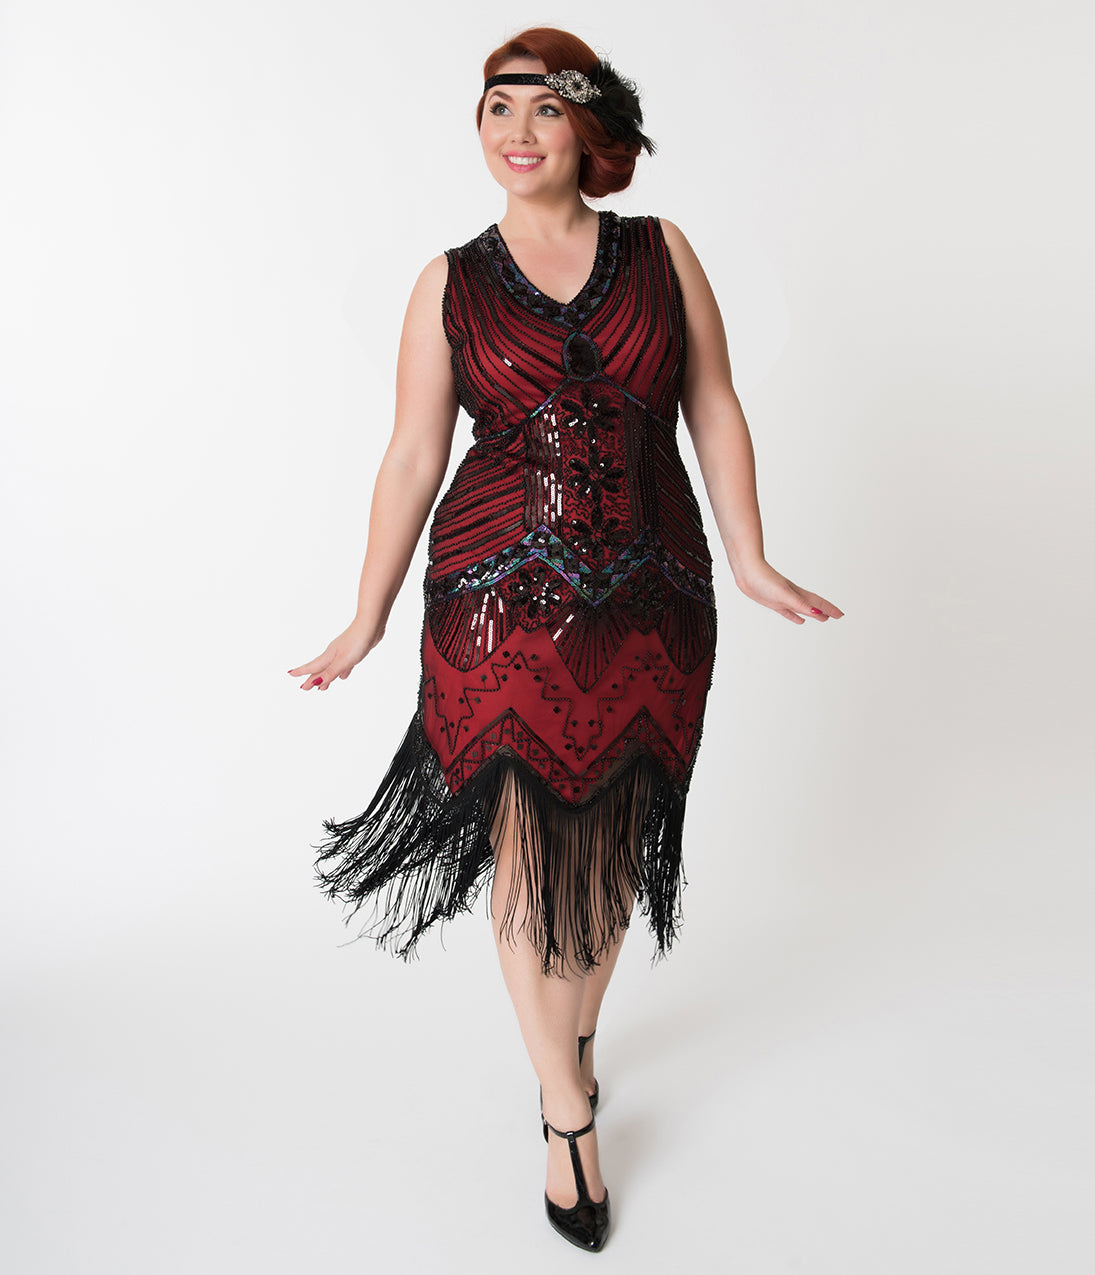 1920s Plus Size Flapper Dresses, Gatsby Dresses, Flapper Costumes Unique Vintage Plus Size 1920S Deco Red  Black Veronique Fringe Flapper Dress $98.00 AT vintagedancer.com